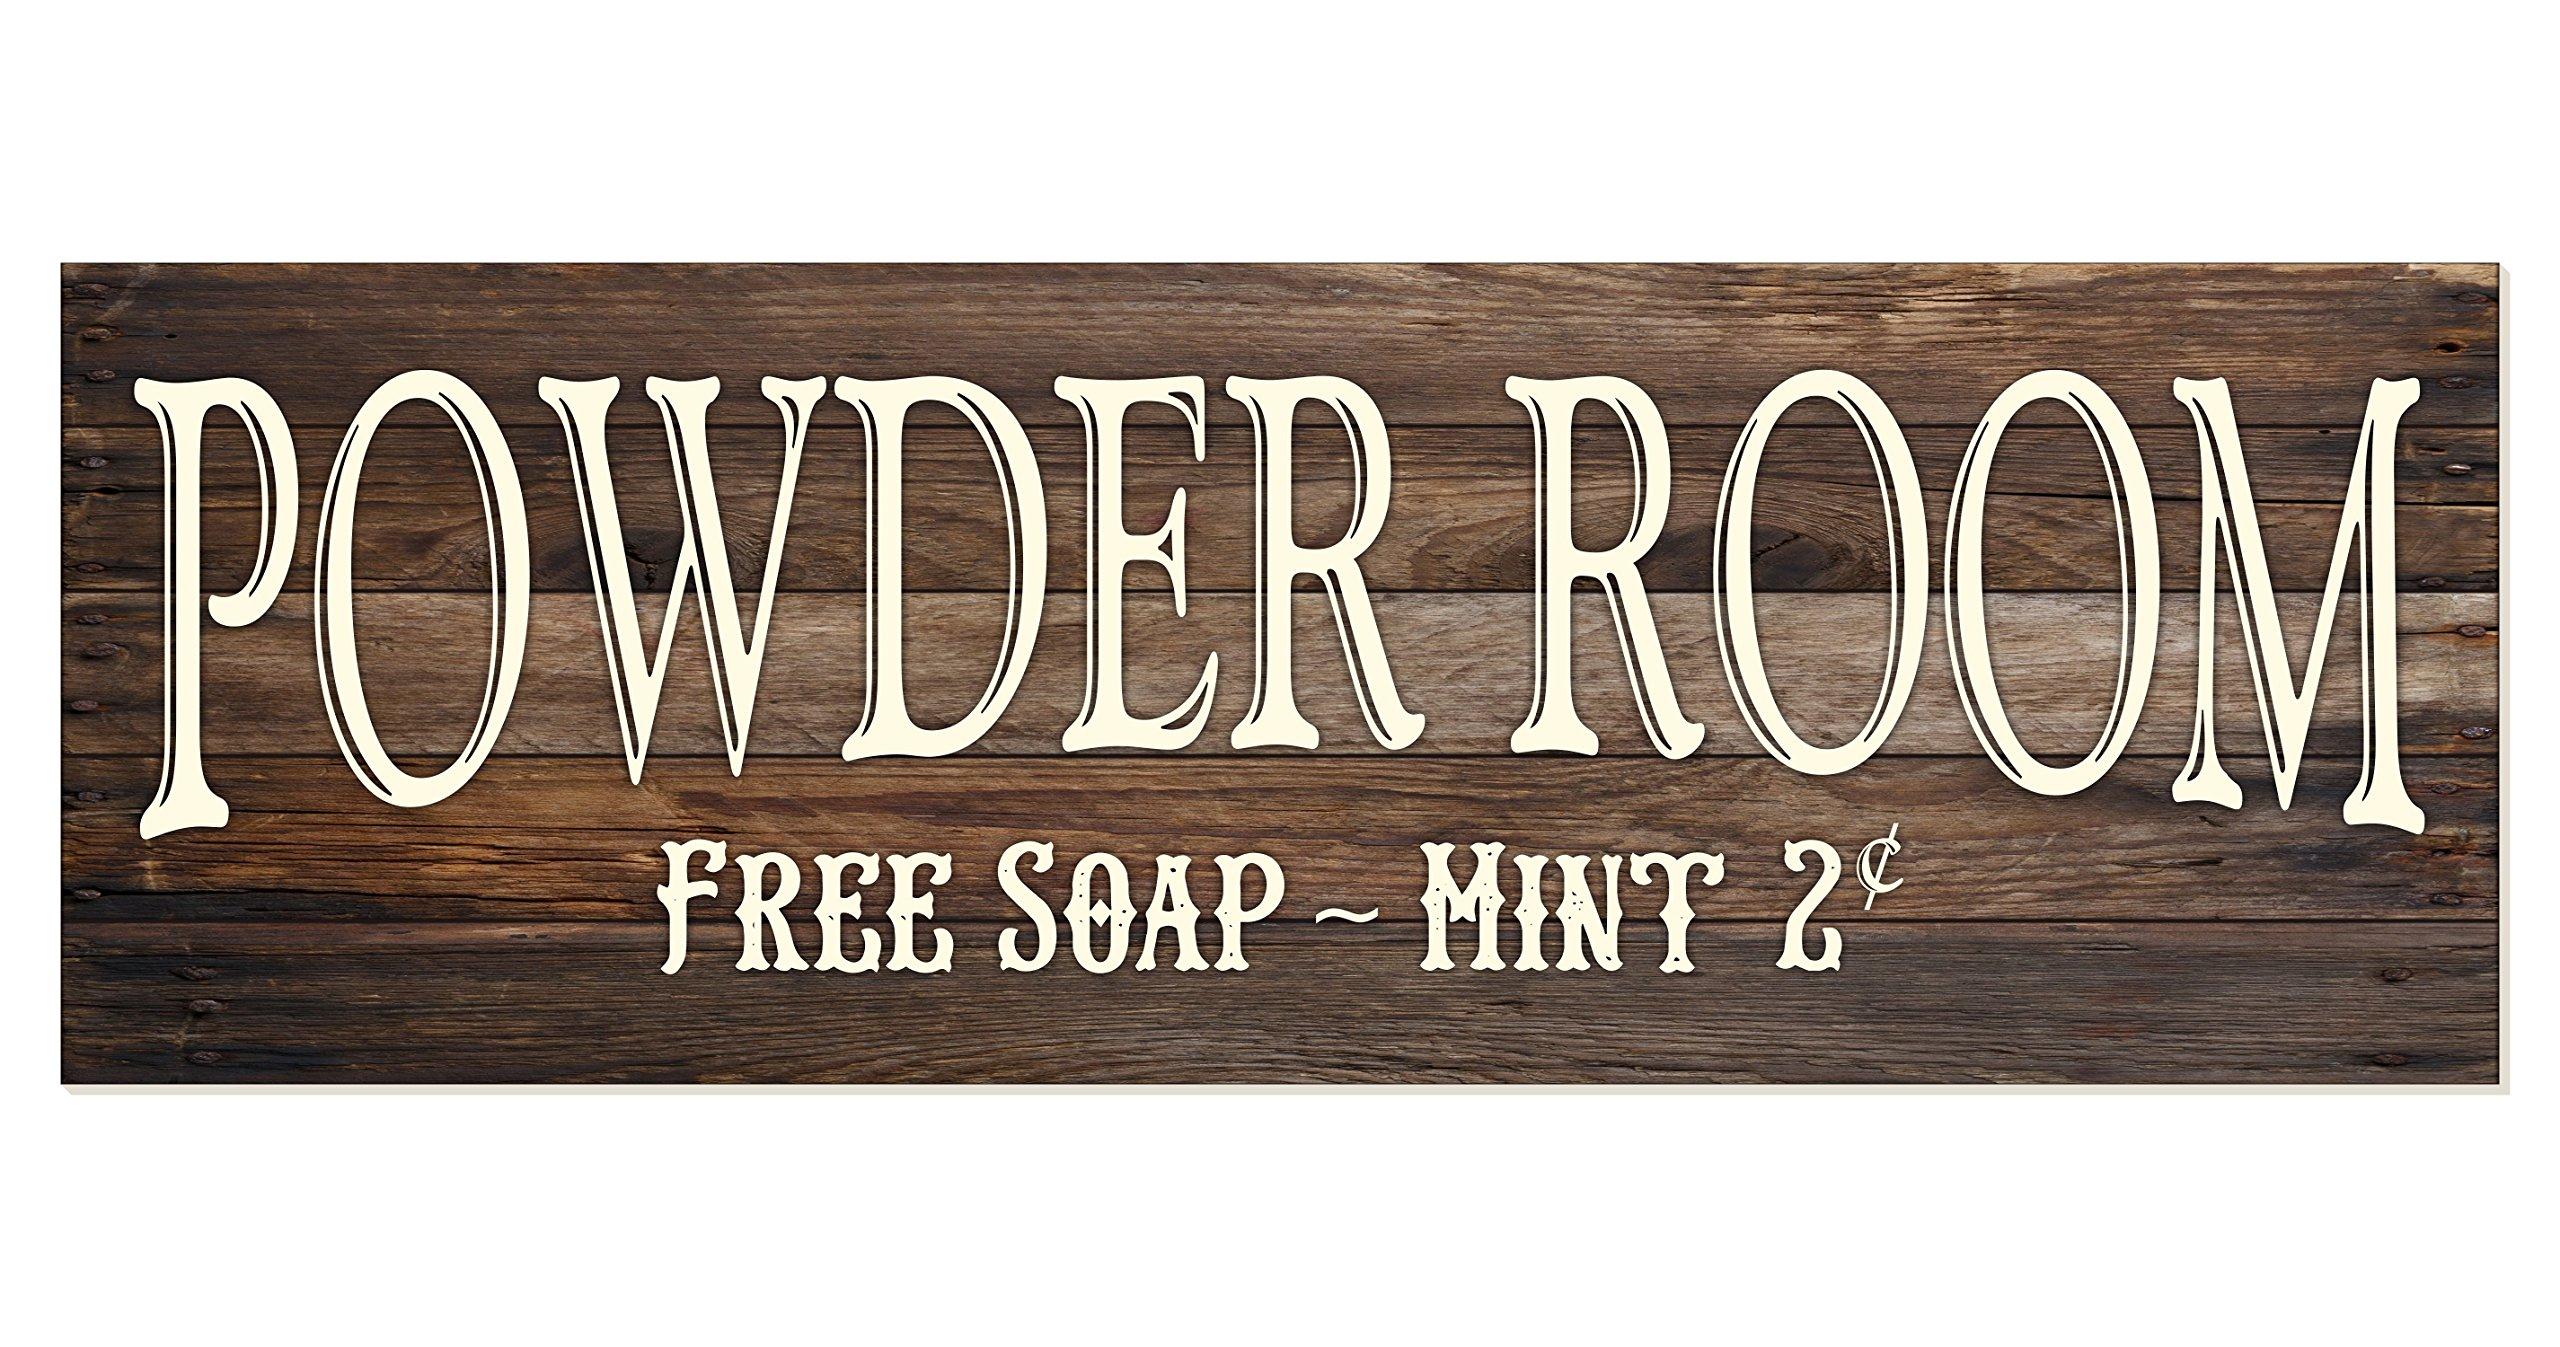 Powder Room Rustic Wood Wall Sign 6x18 (Brown)